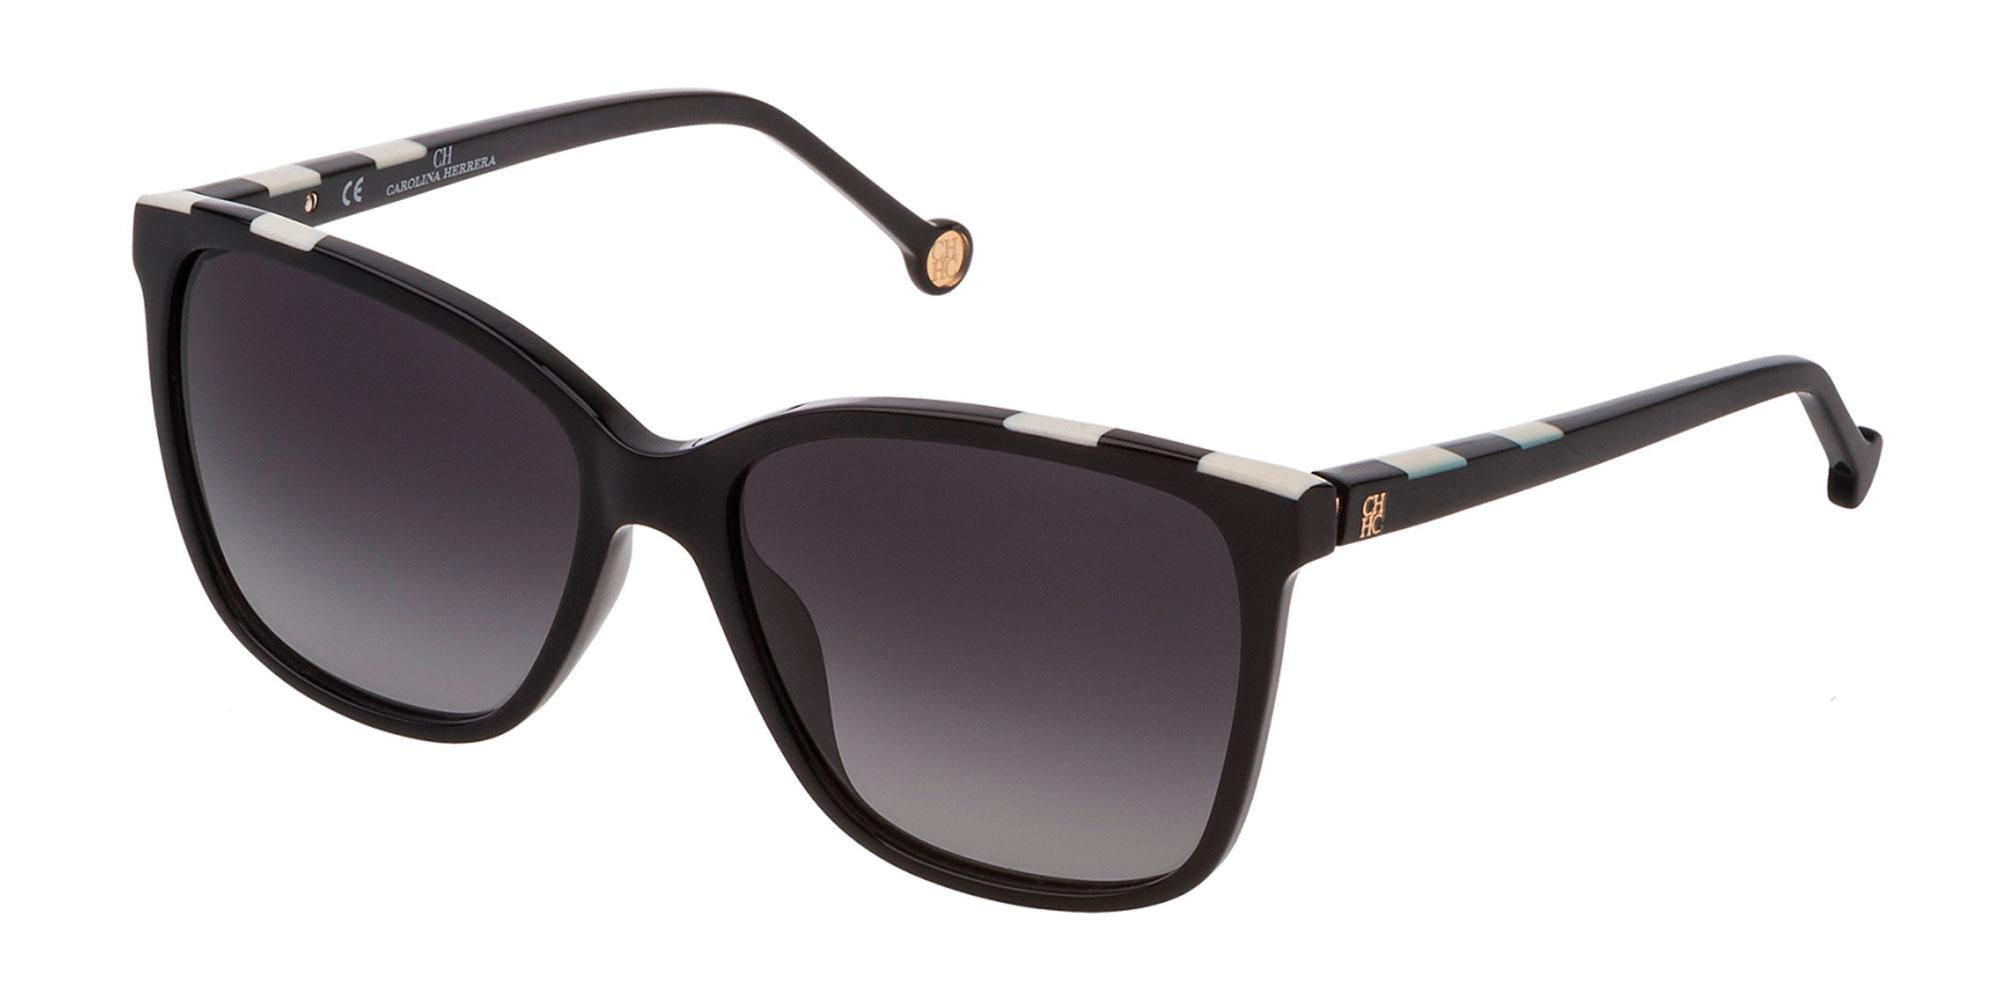 0700 SHE795 Sunglasses, CH Carolina Herrera